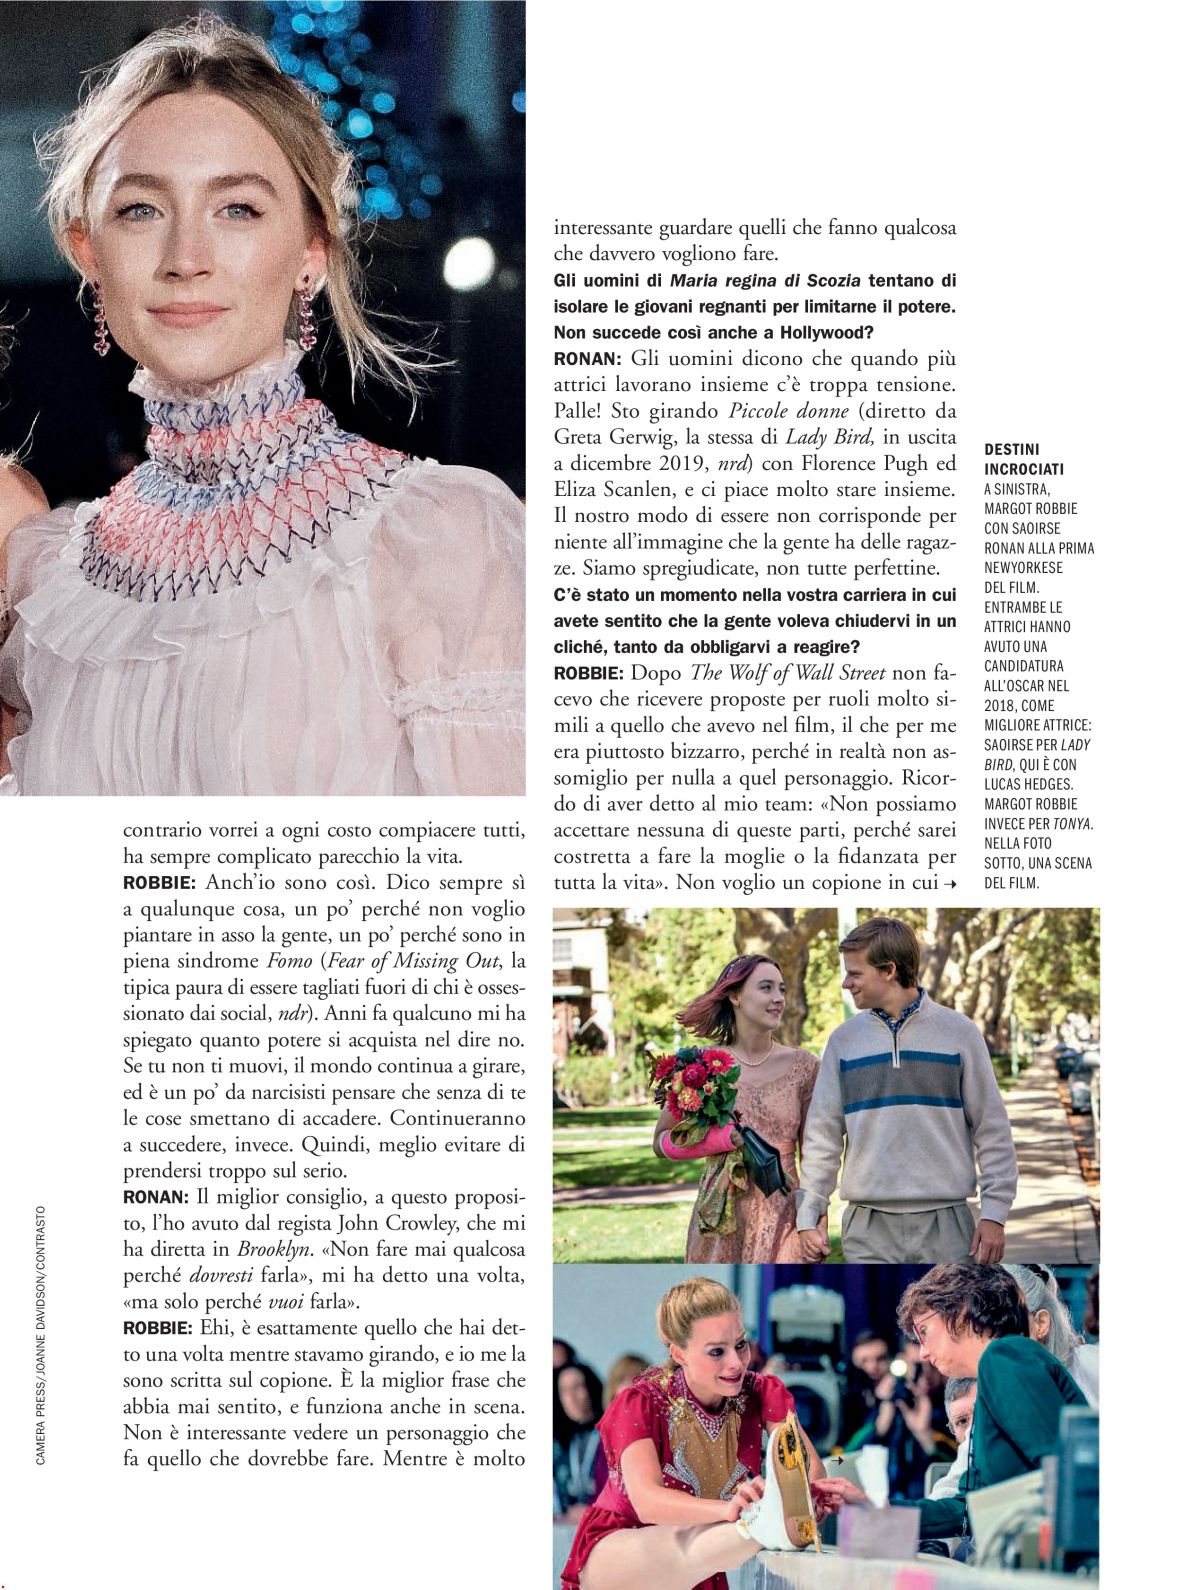 margot-robbie-and-saoirse-ronan-in-marie-claire-magazine-italy-february-2019-2.jpg